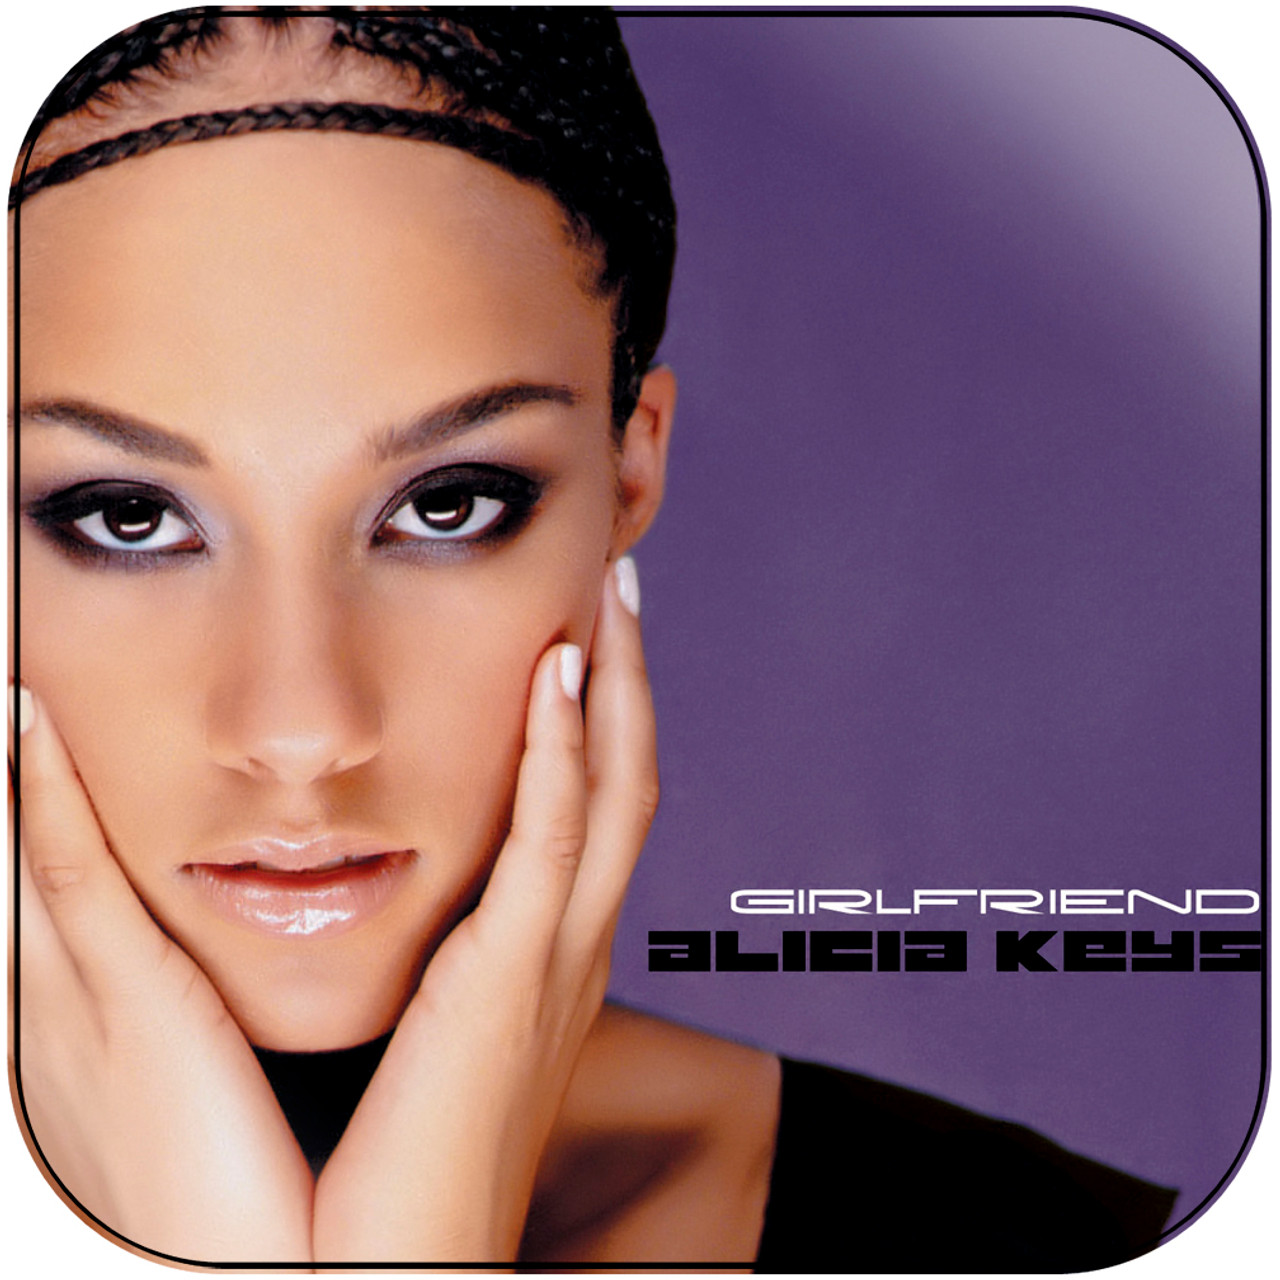 Alicia Keys - Girlfriend Album Cover Sticker